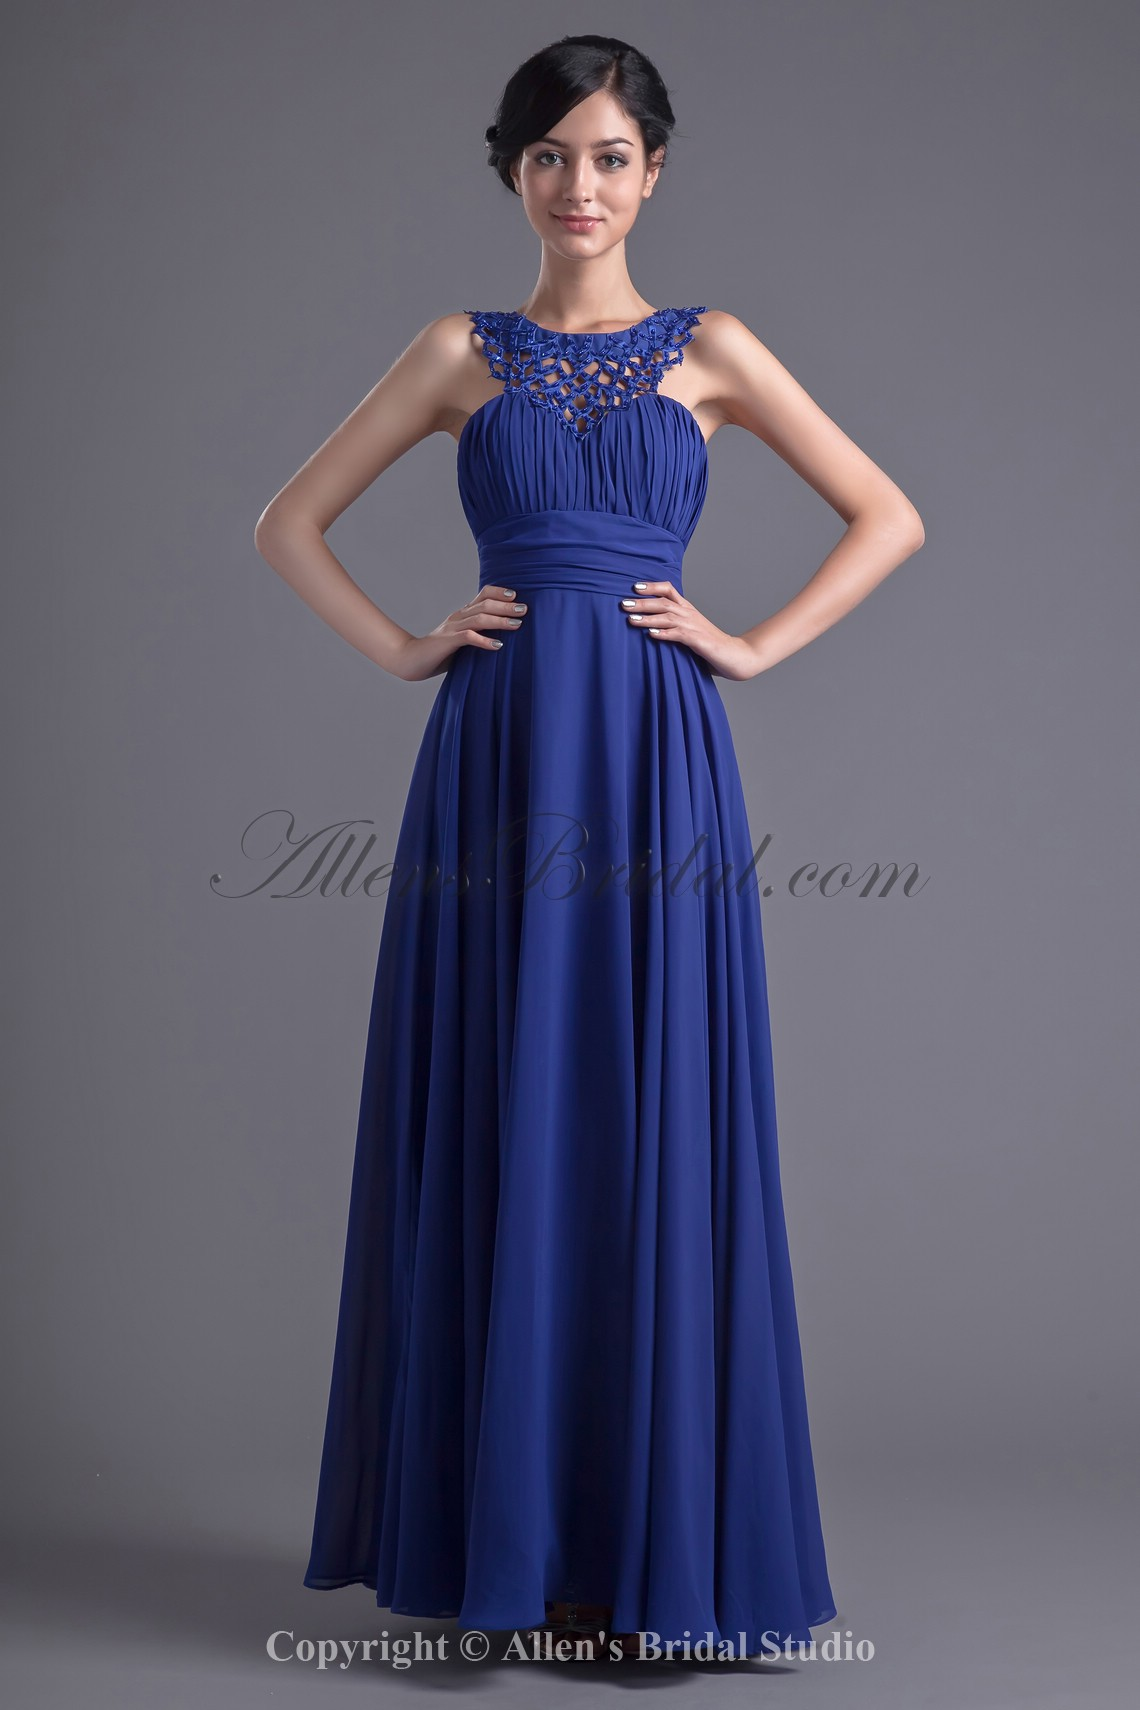 /21-161/chiffon-jewel-neckline-a-line-floor-length-beading-prom-dress.jpg